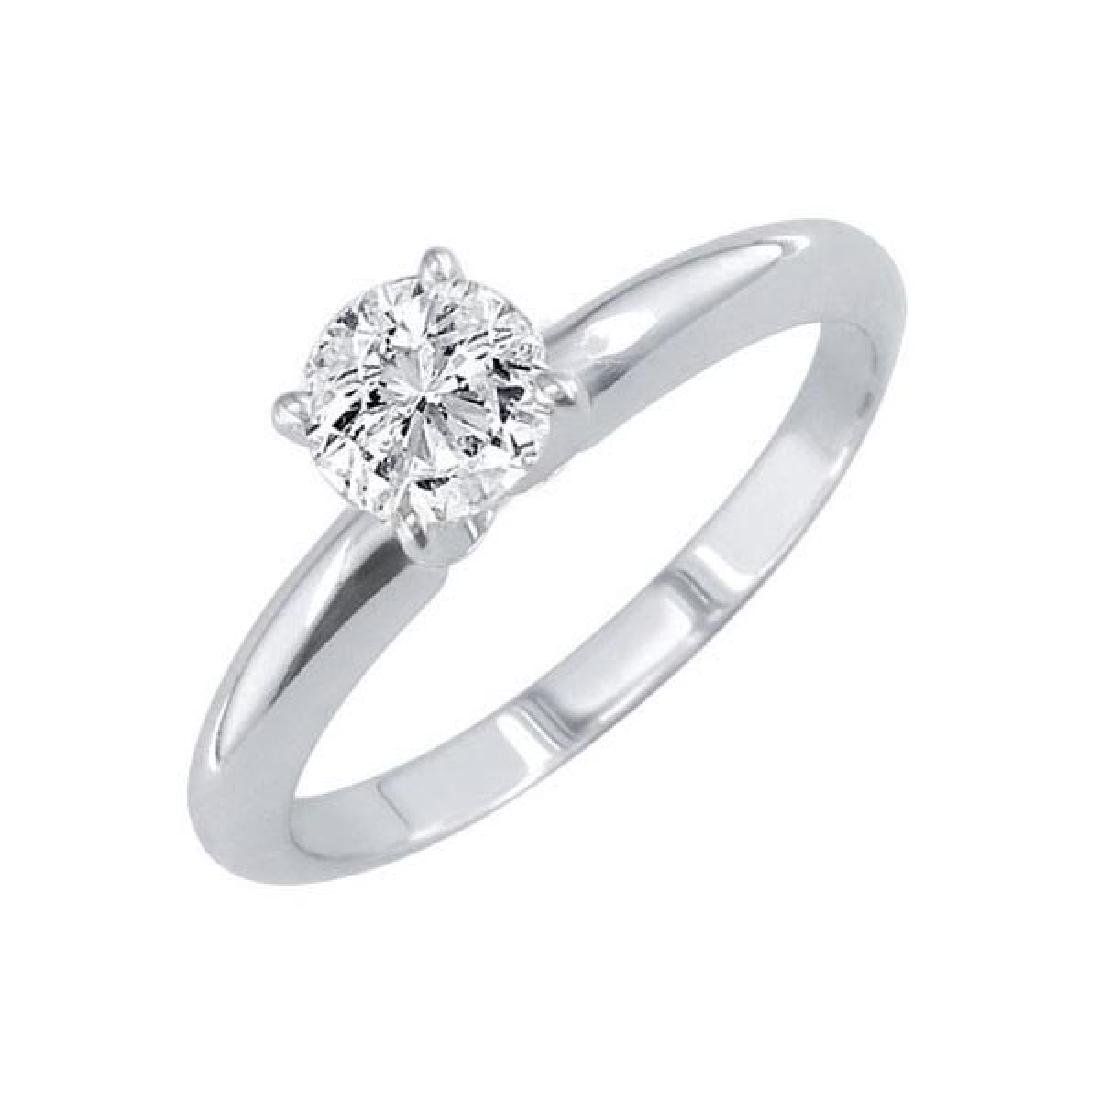 Certified 1.29 CTW Round Diamond Solitaire 14k Ring F/I